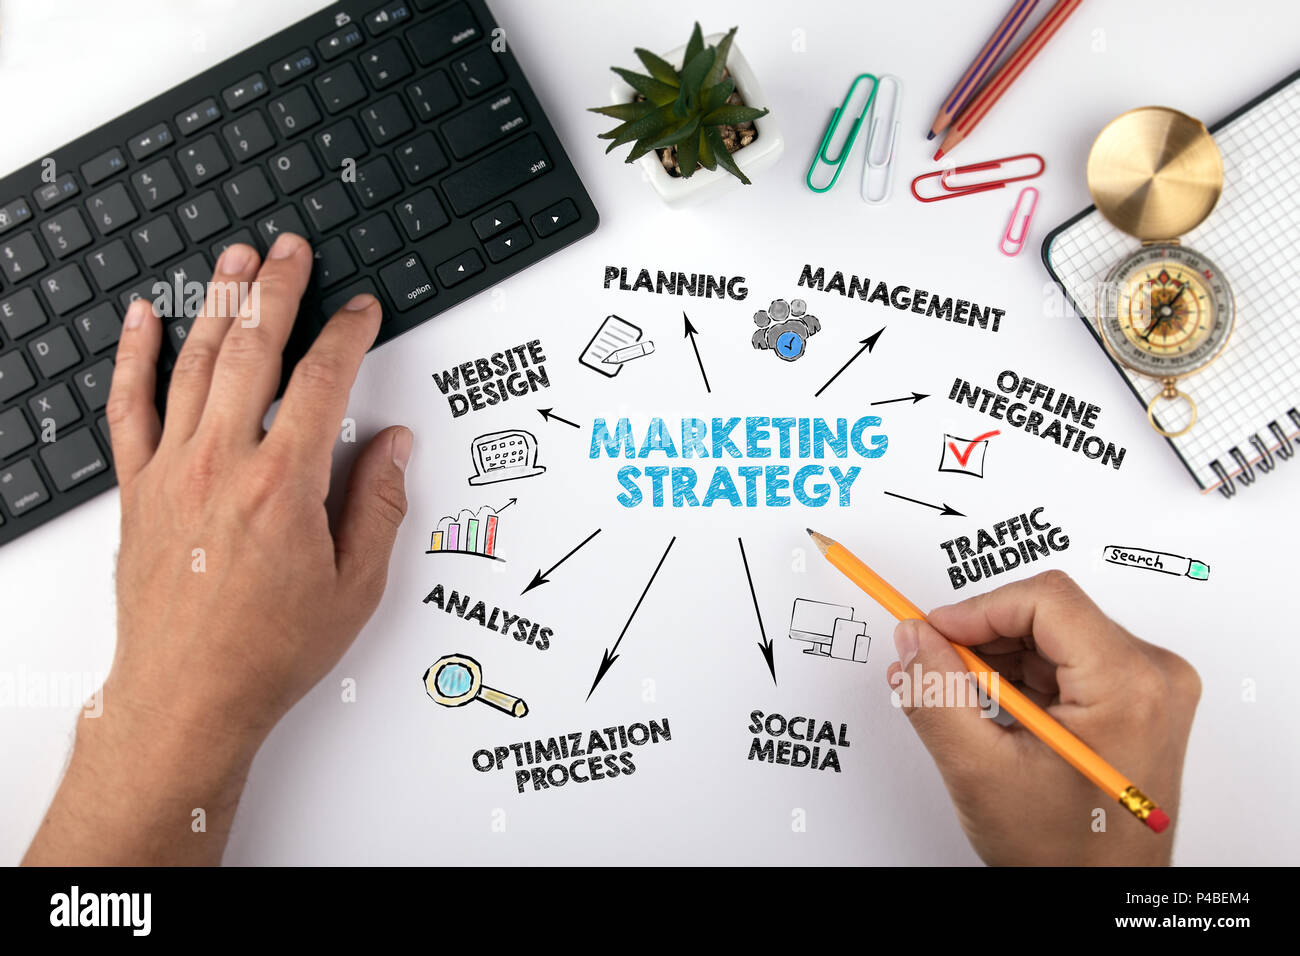 marketing strategy Concept. Chart with keywords and icons - Stock Image